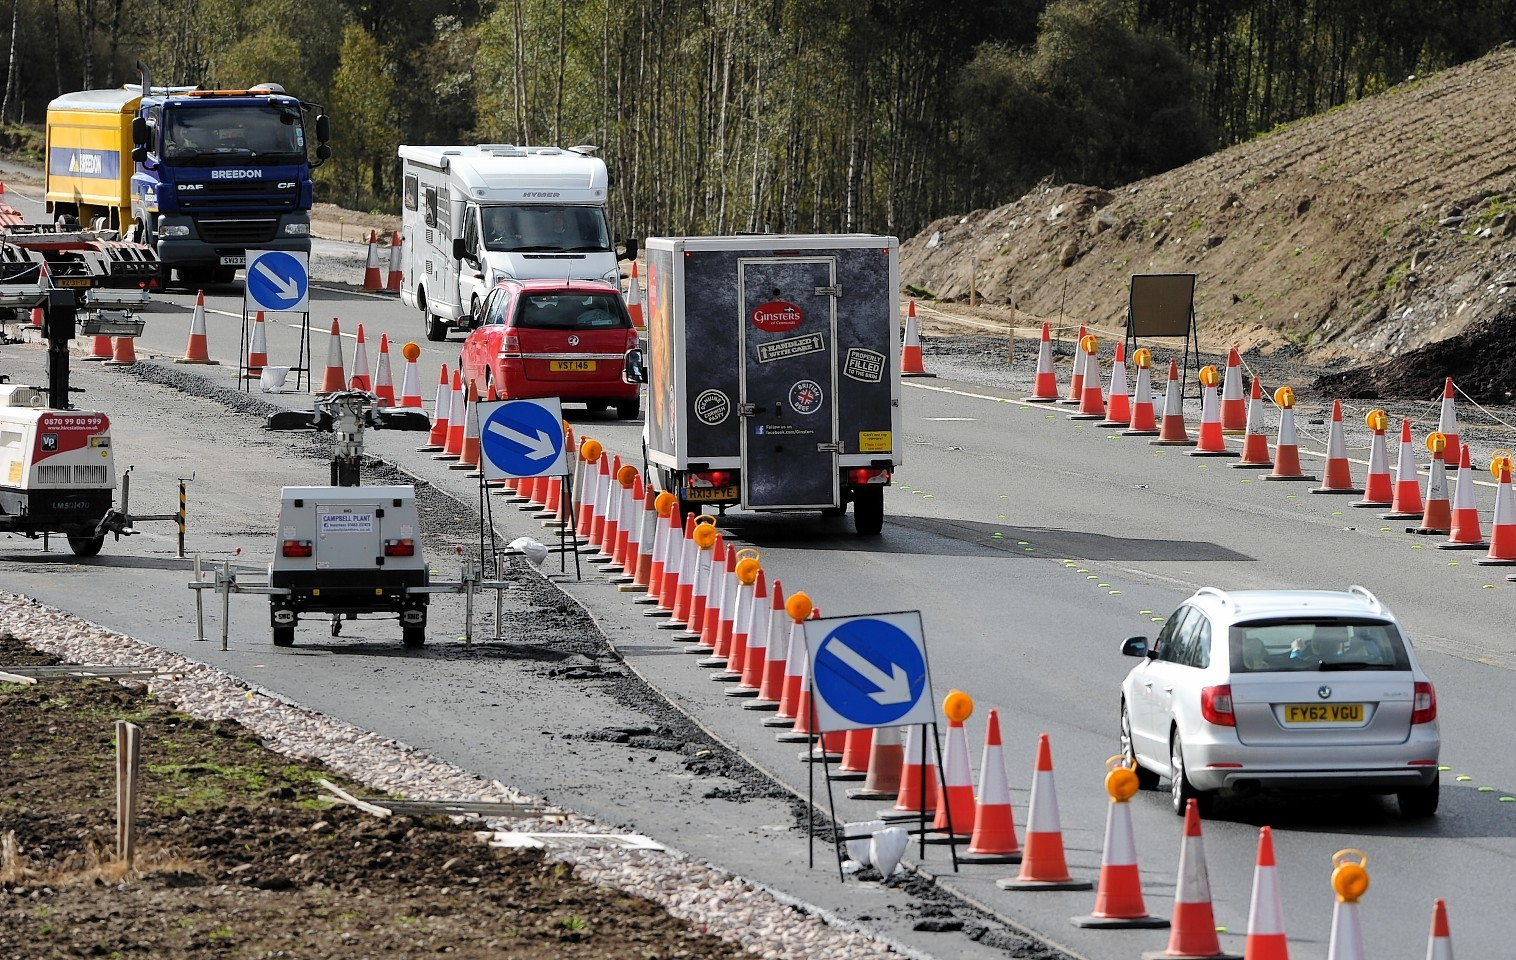 Previous roadworks on the A9 between Kincraig and Dalraddy during the construction of the dual carriageway